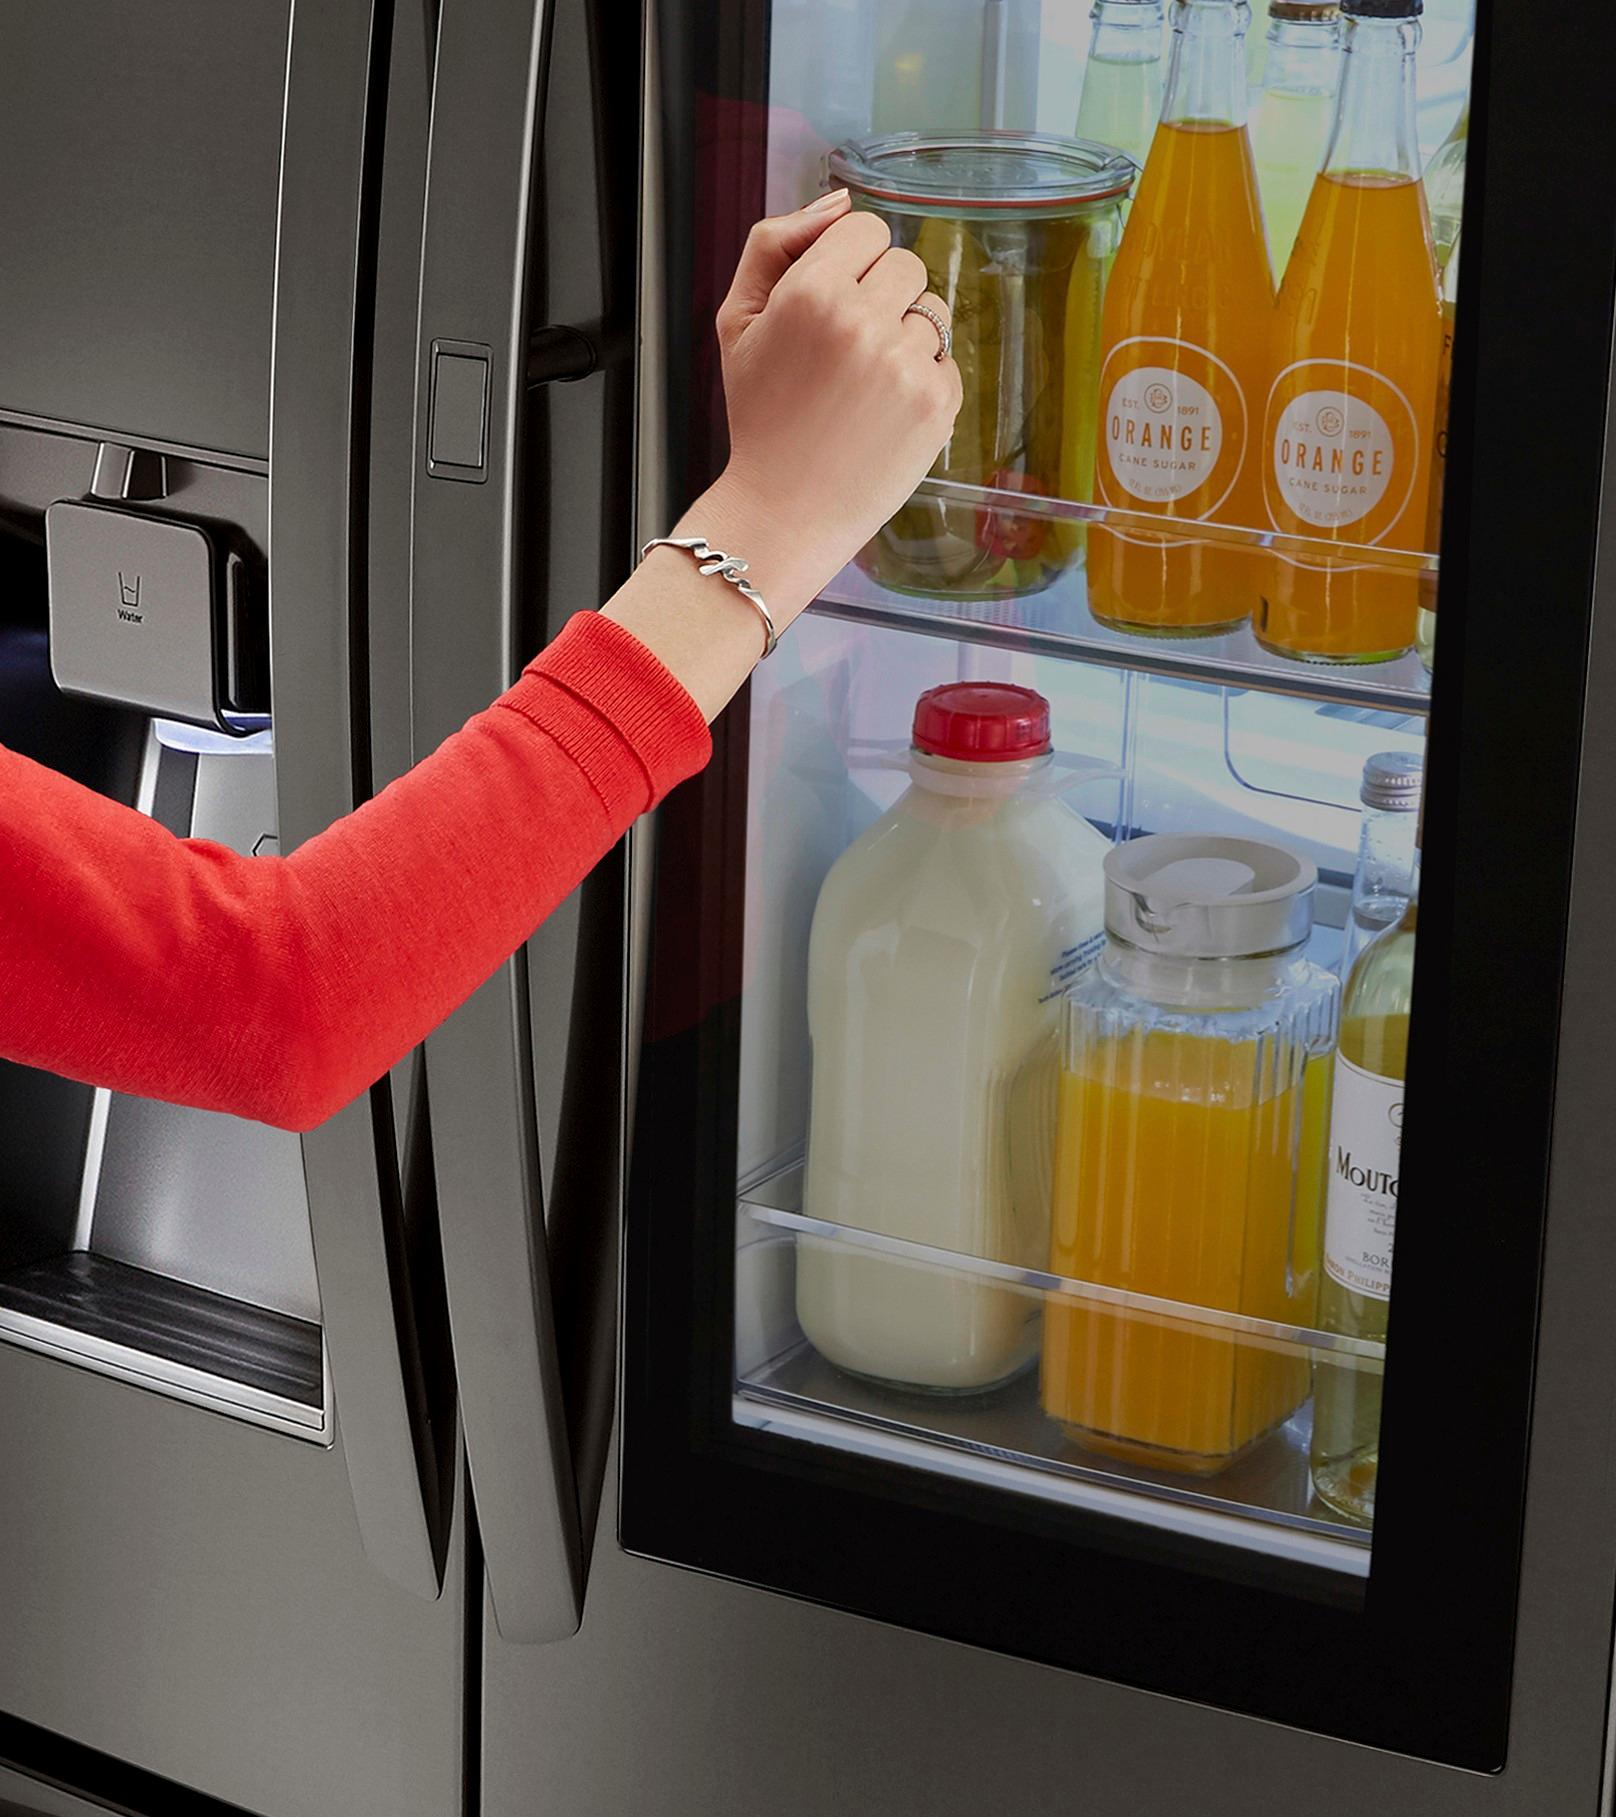 LG InstaView Refrigerator at Best Buy — The Latest in Technology & Design